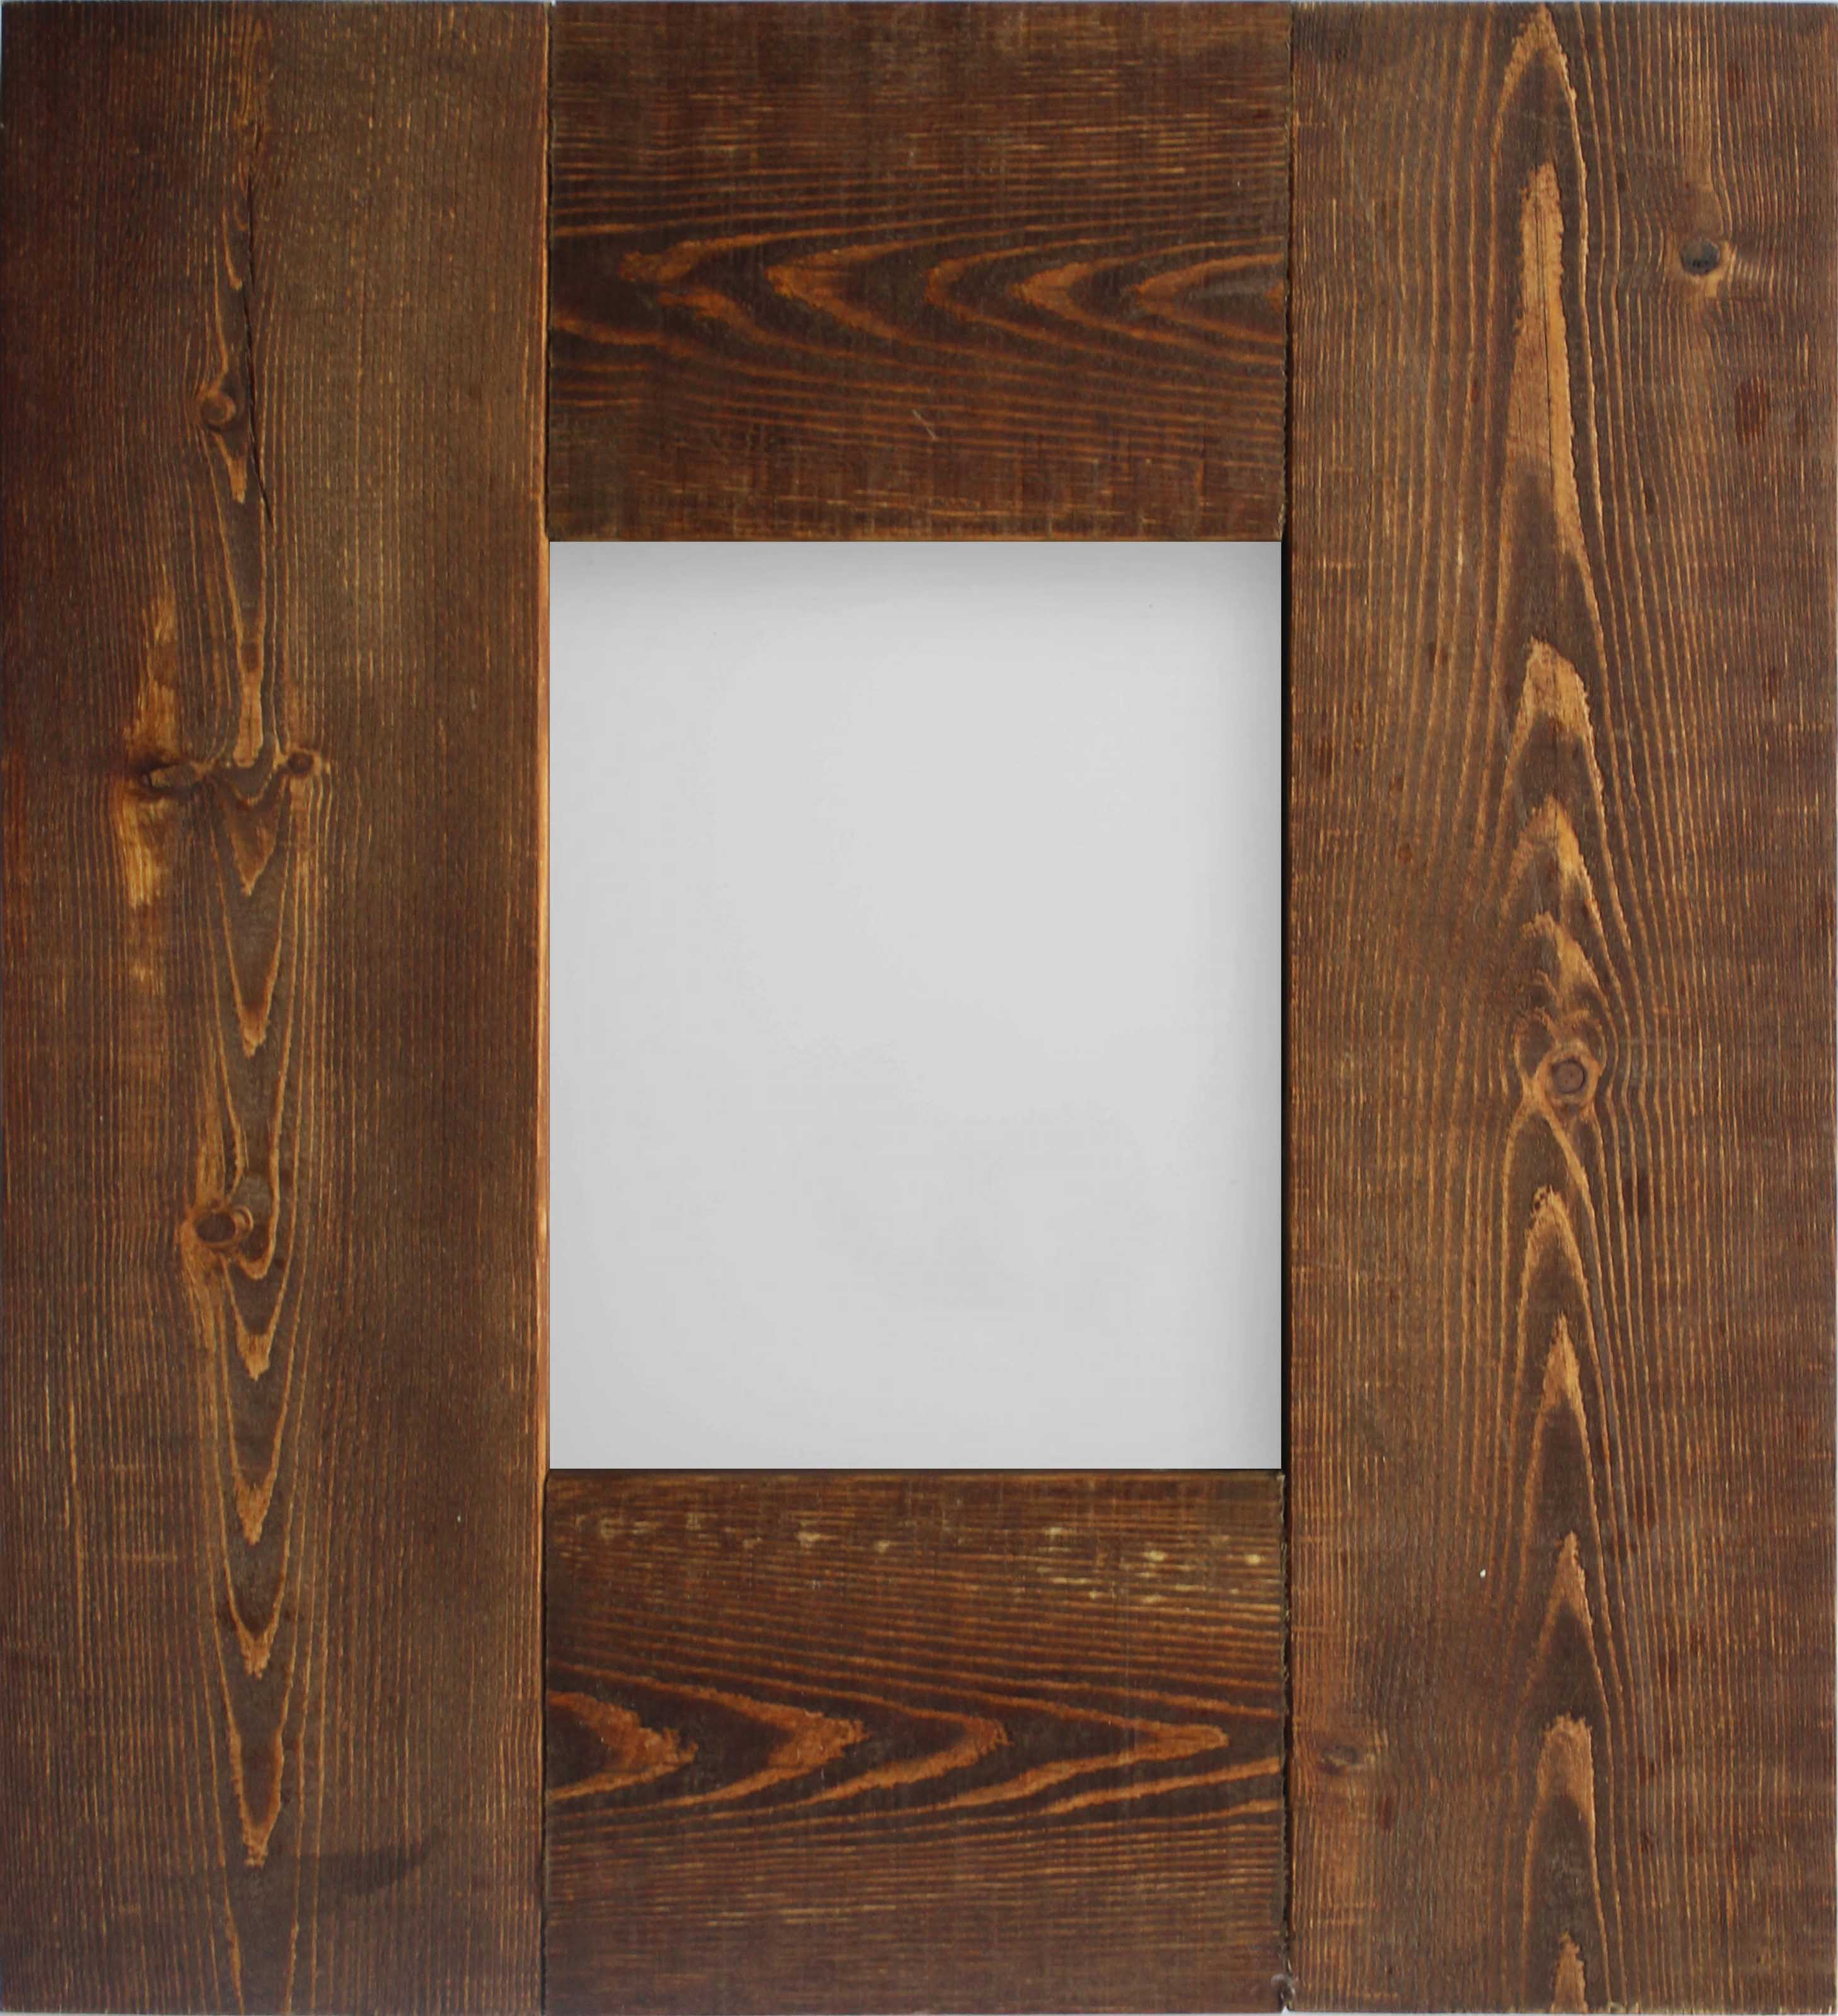 Frame Company Loxley Range Large Chunky Rustic Wooden Picture Photo ...